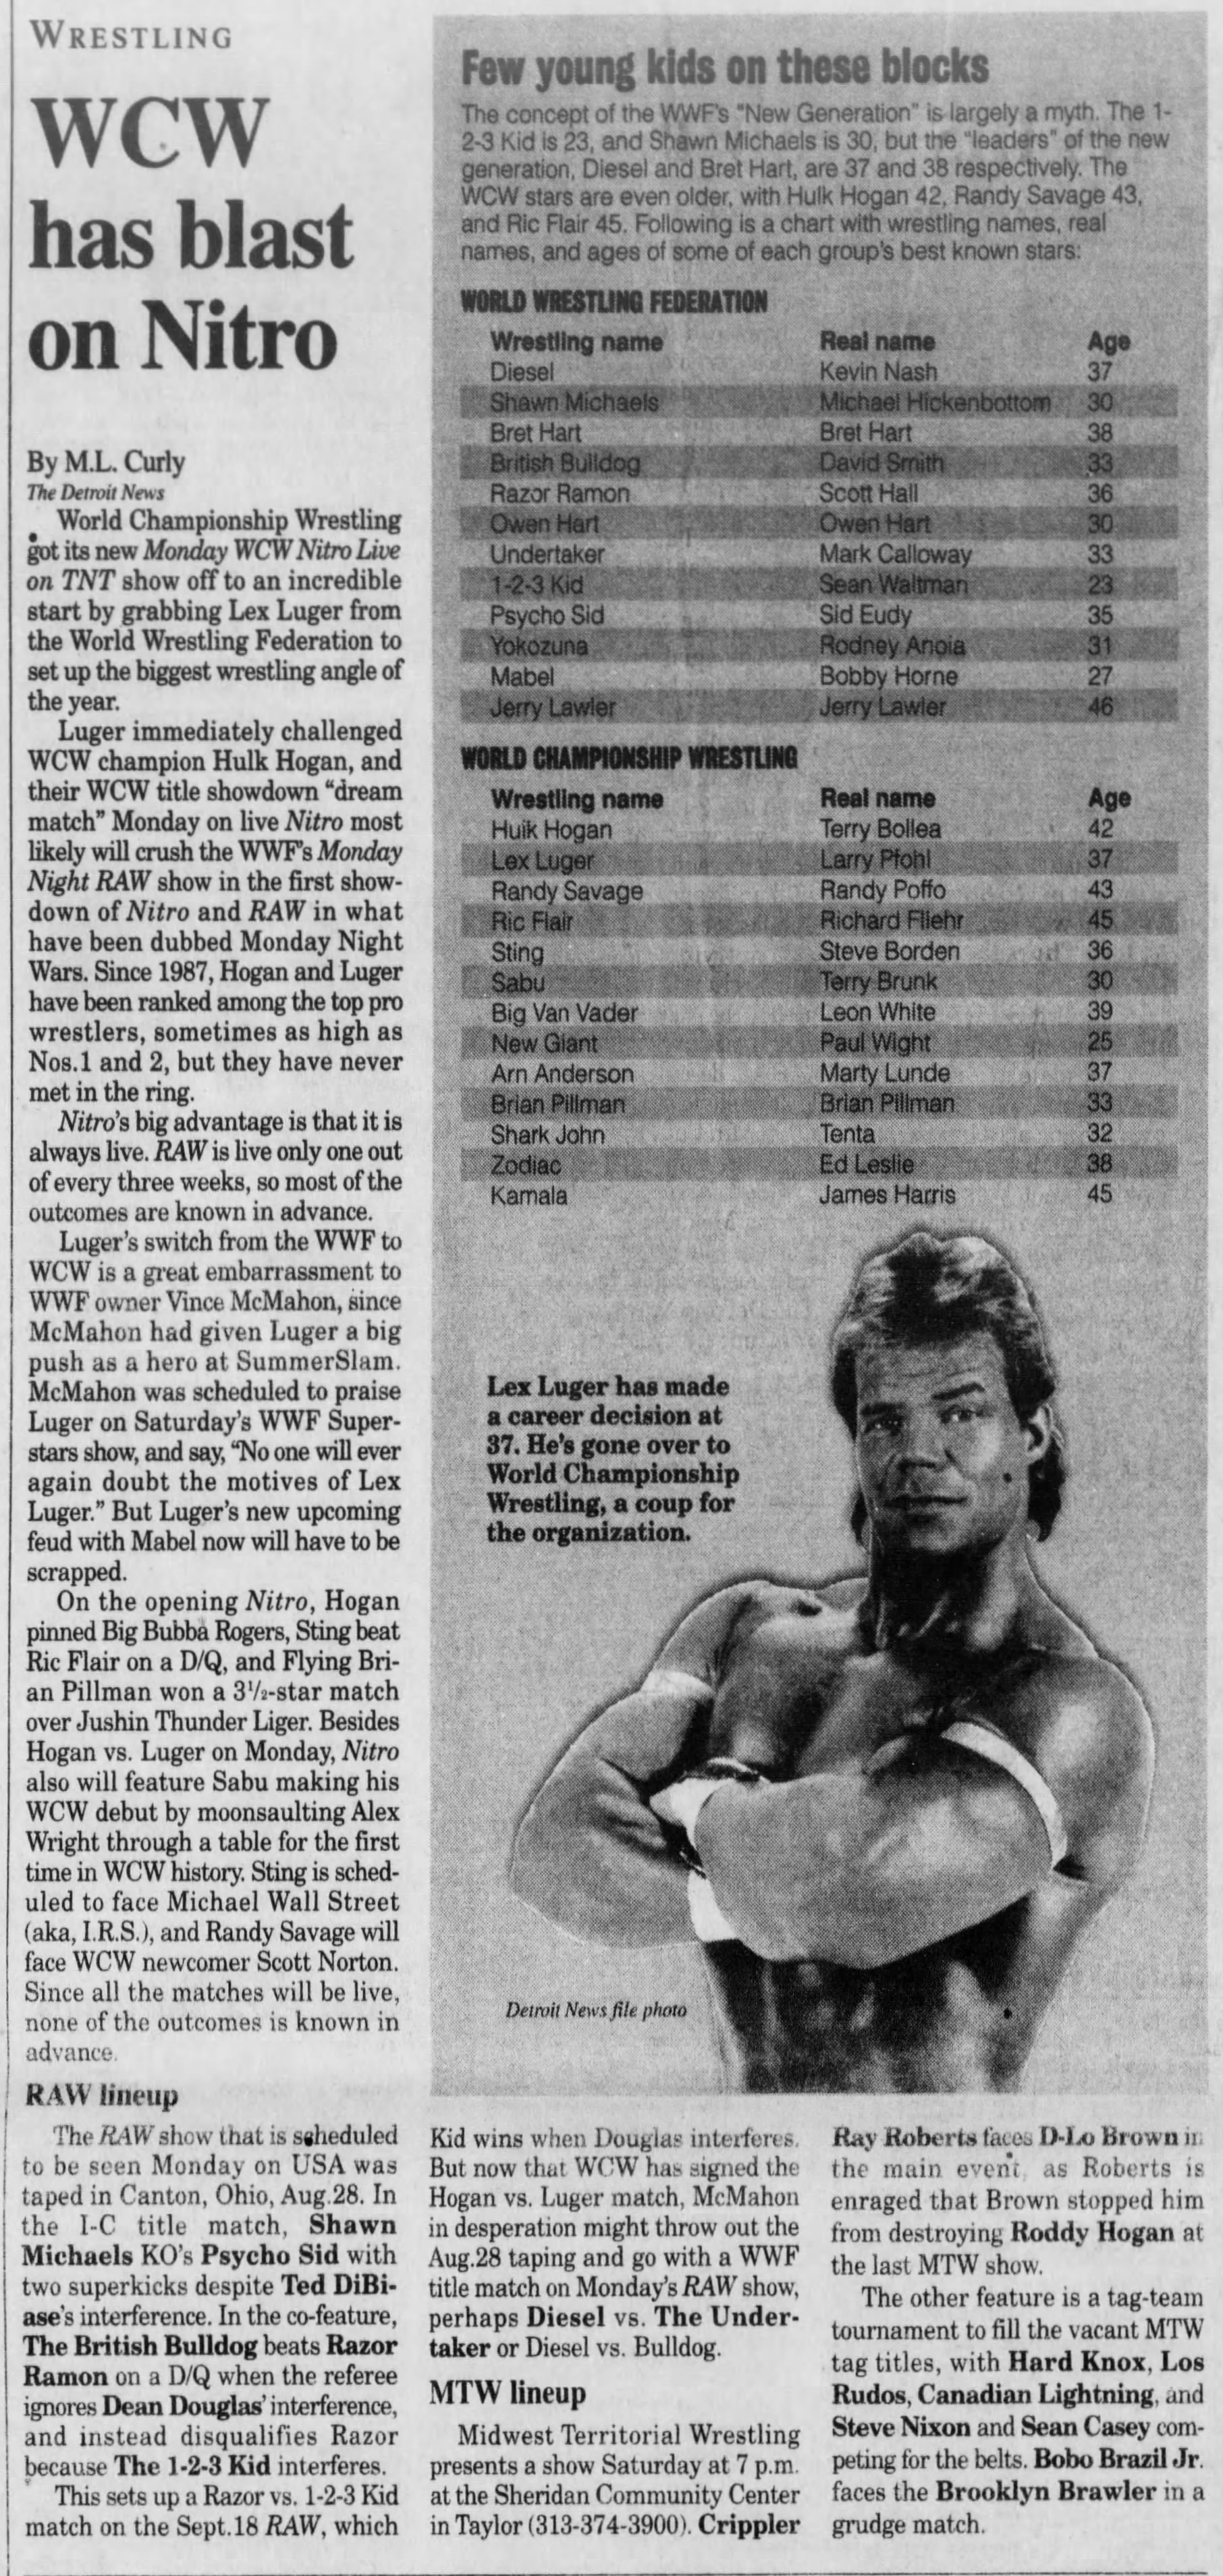 an ML Curly Wrestling article from The Detroit News [ 1995 September 08 ]